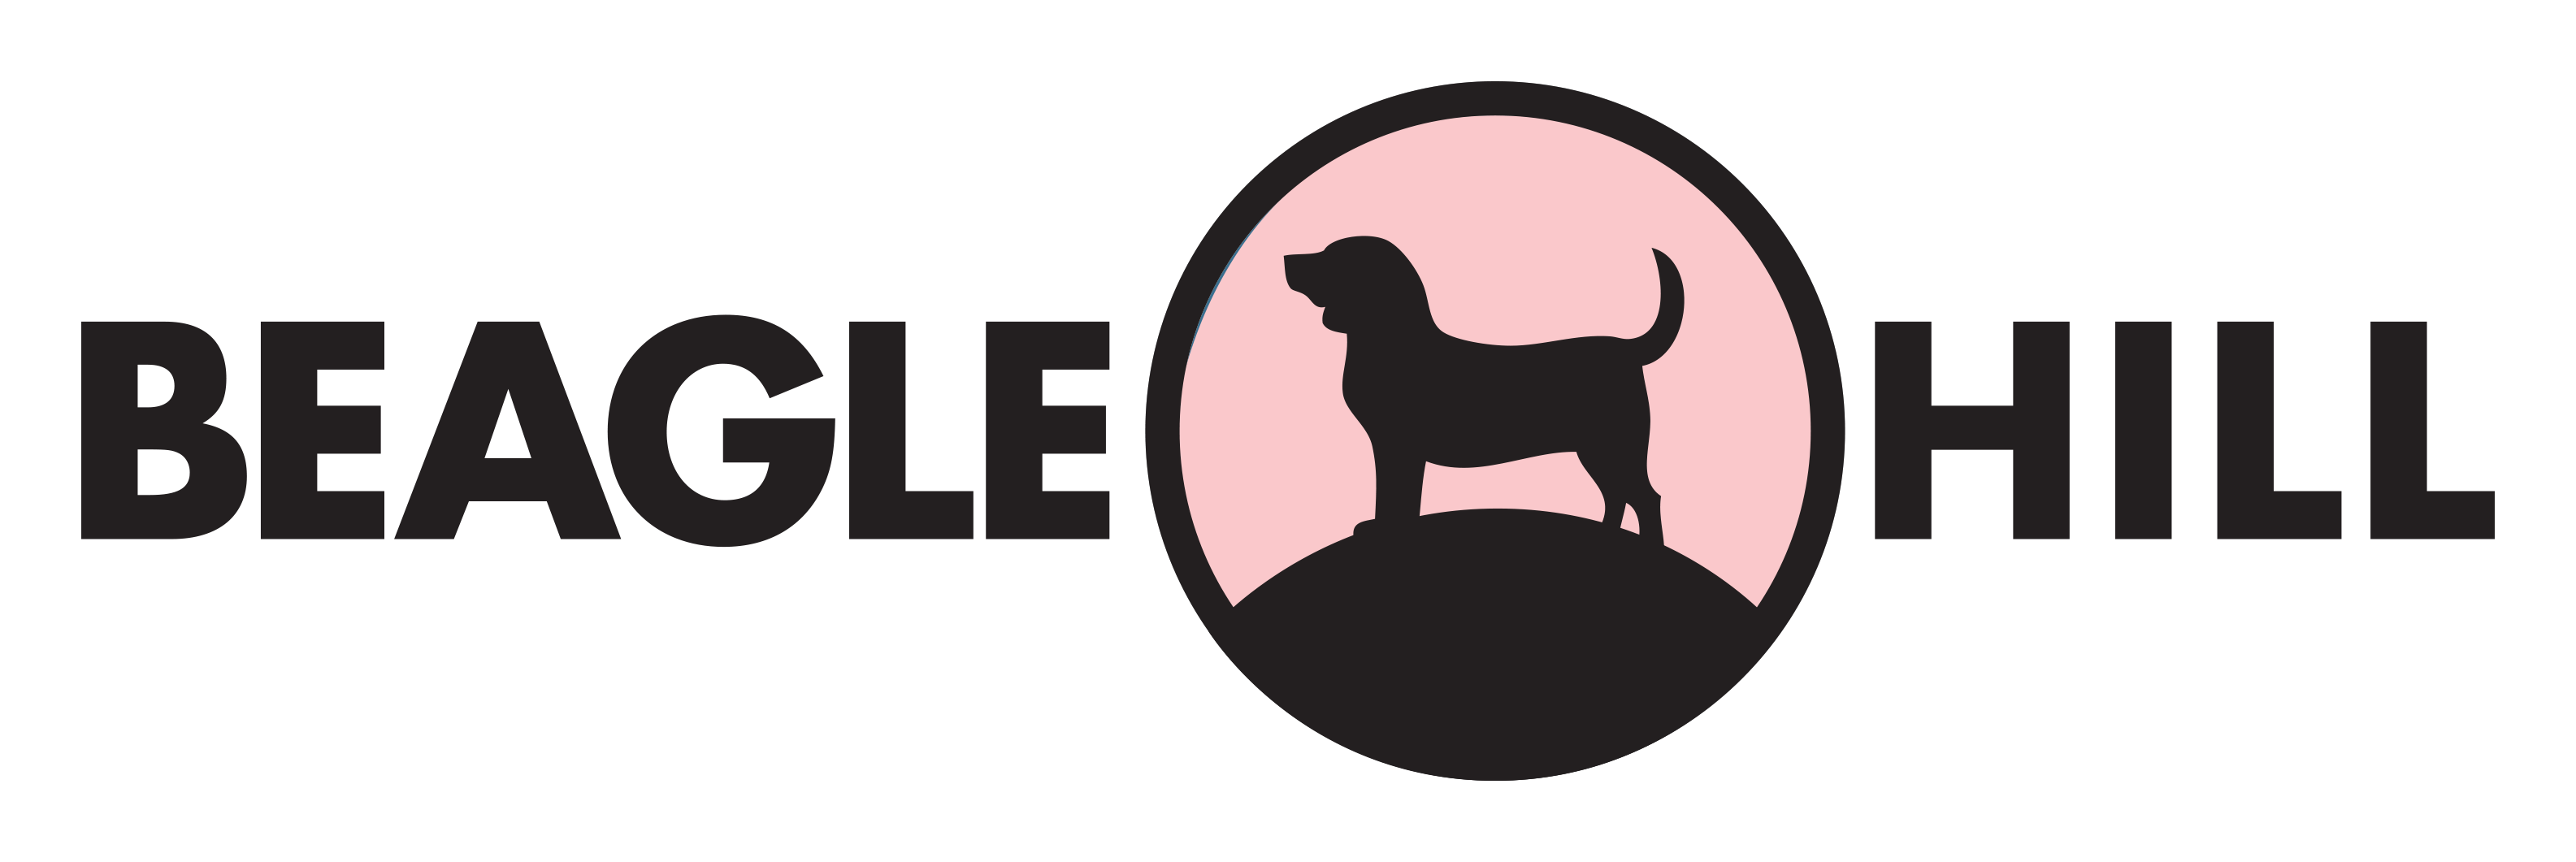 beagle hill logos and brand assets